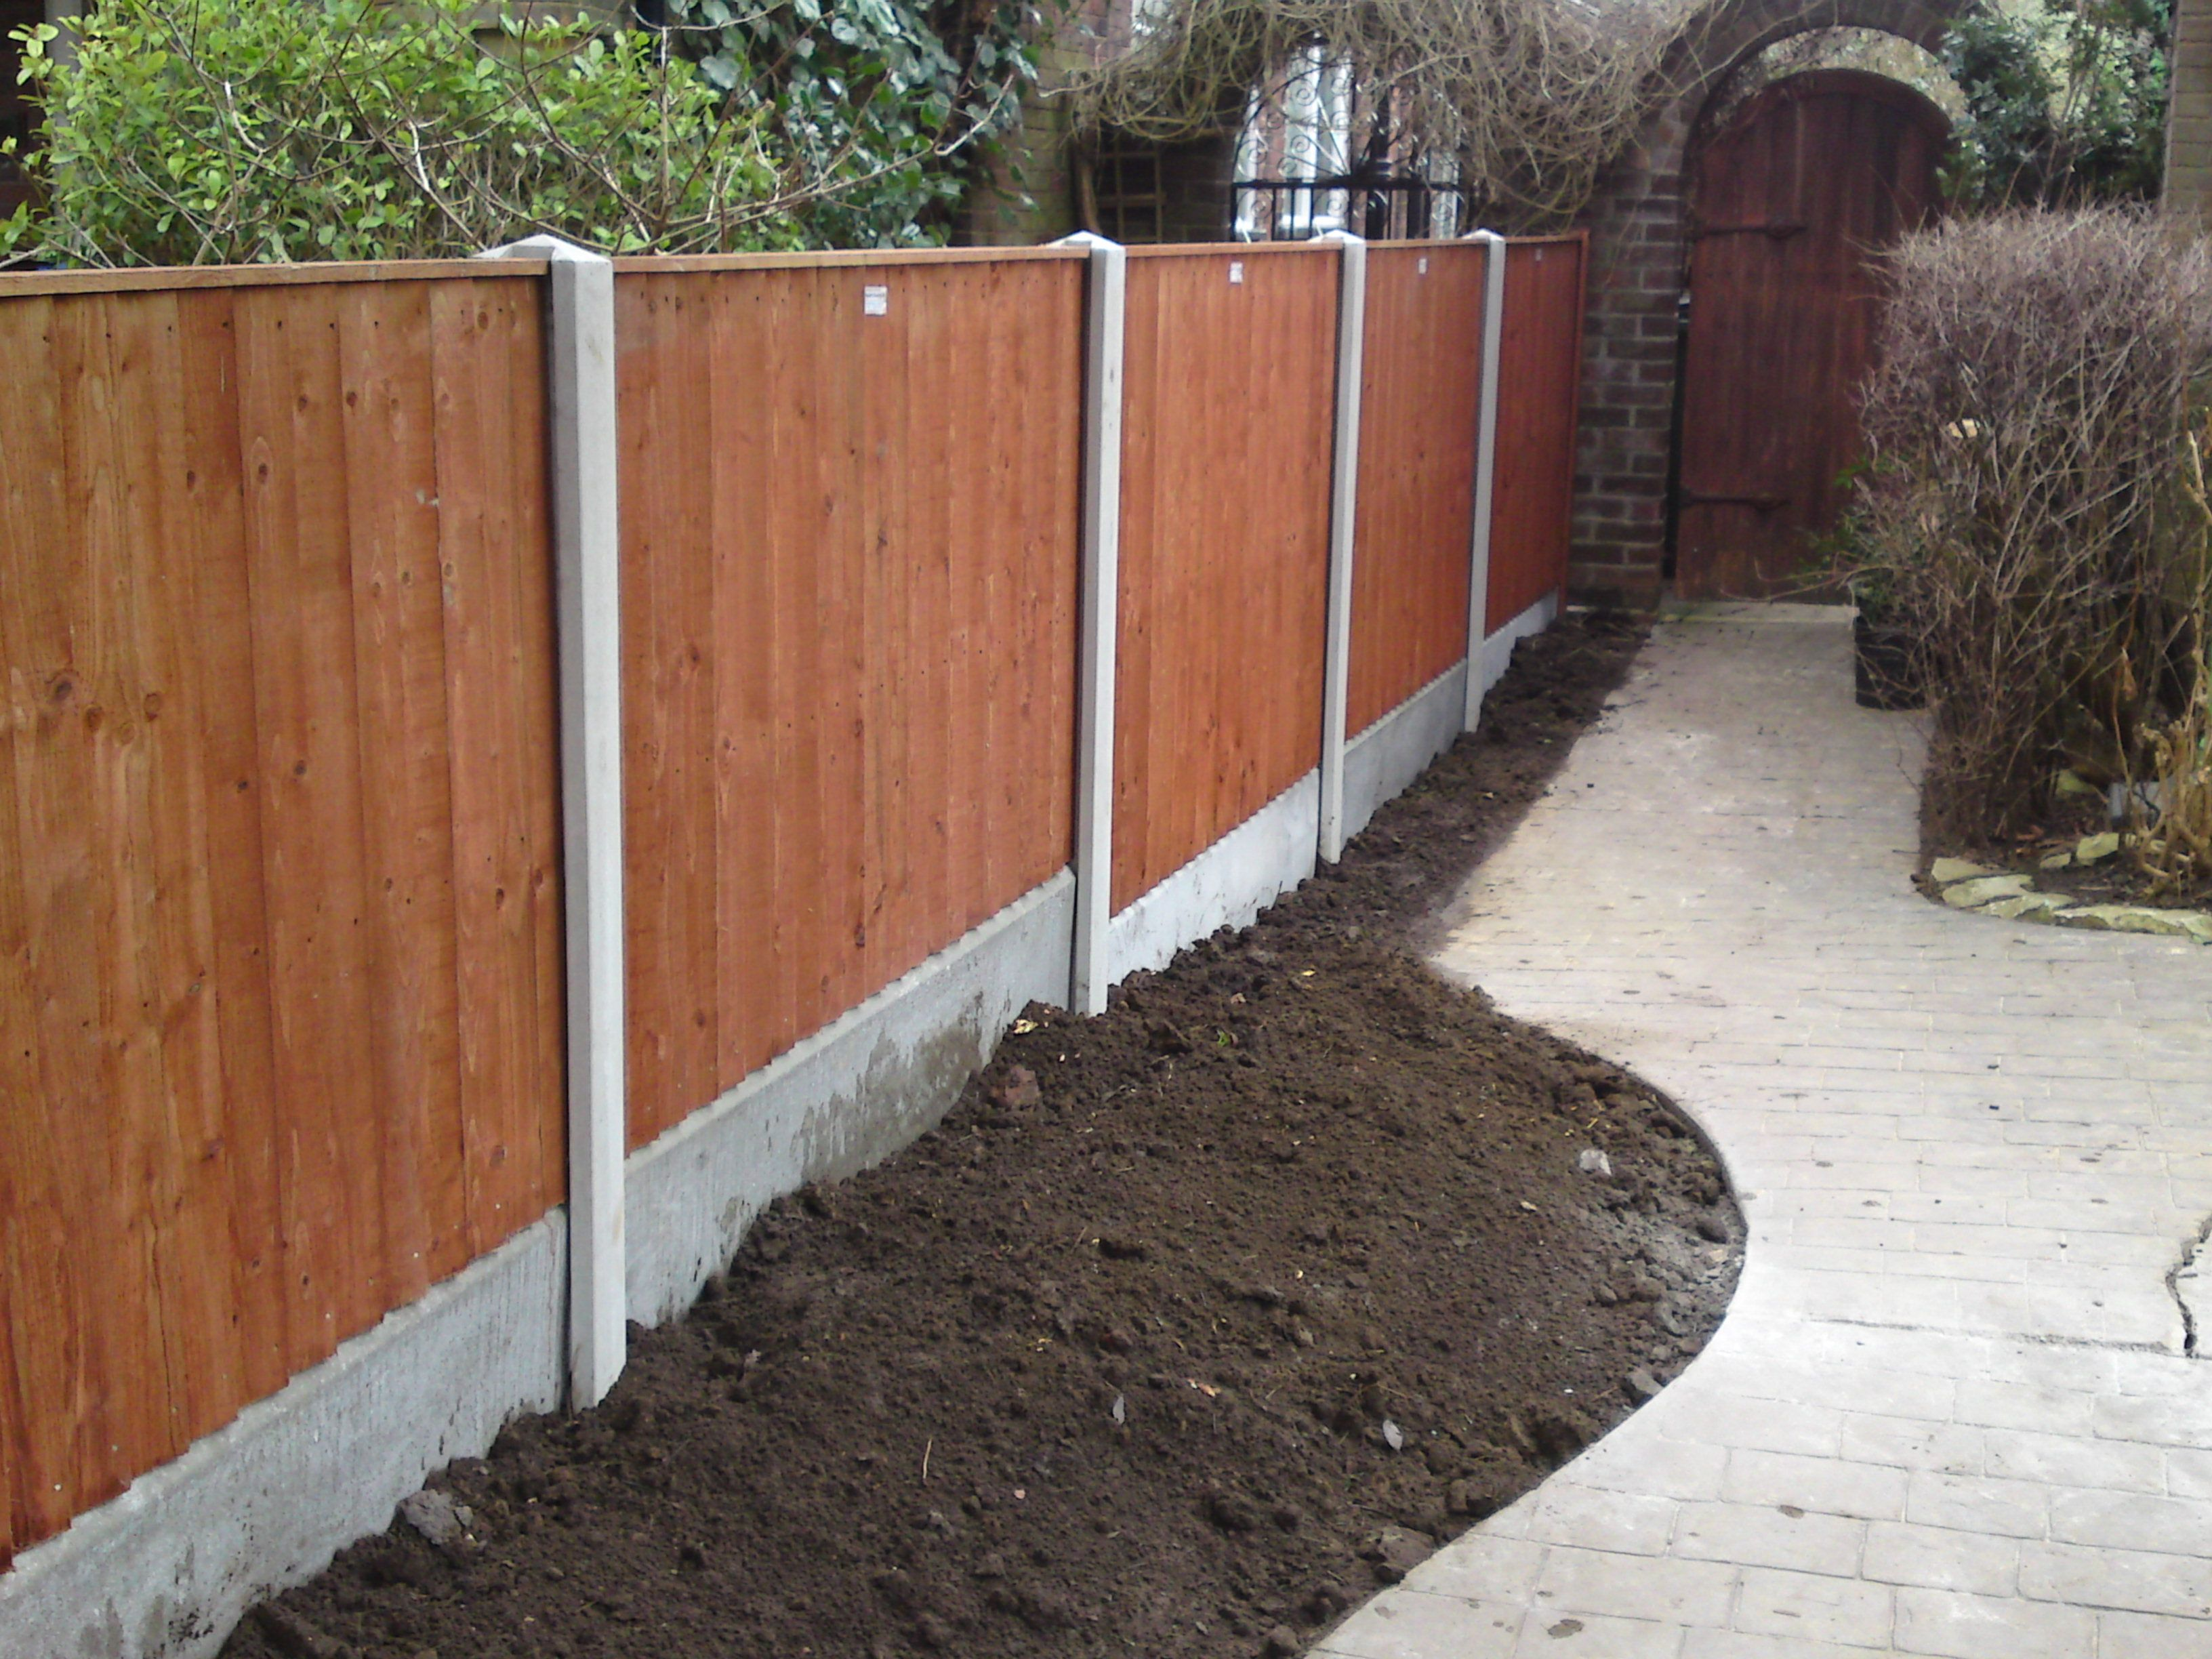 10 Garden Fence Ideas That Truly Creative Inspiring And Low Cost Concrete Fence Posts Concrete Fence Black Garden Fence